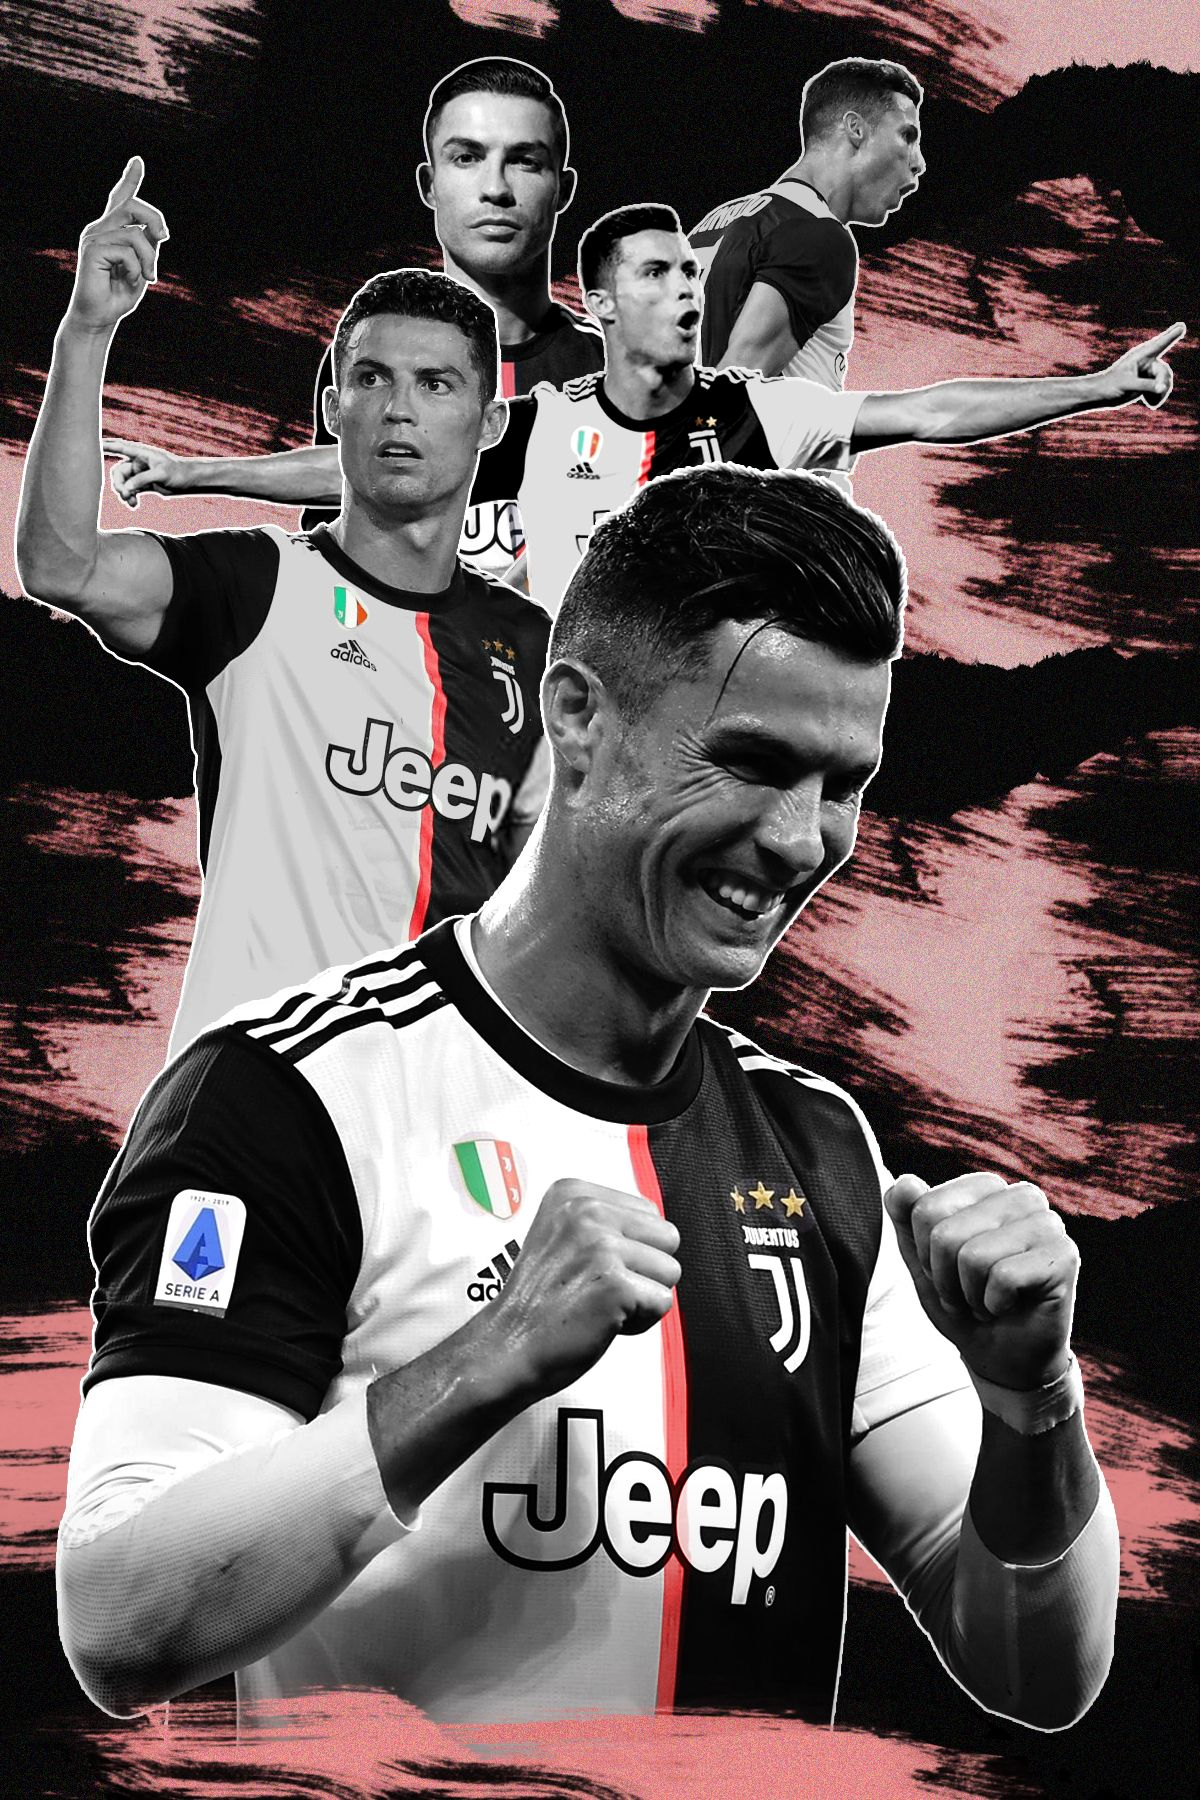 Digital art, photo manipulation, Juventus, CR7, football